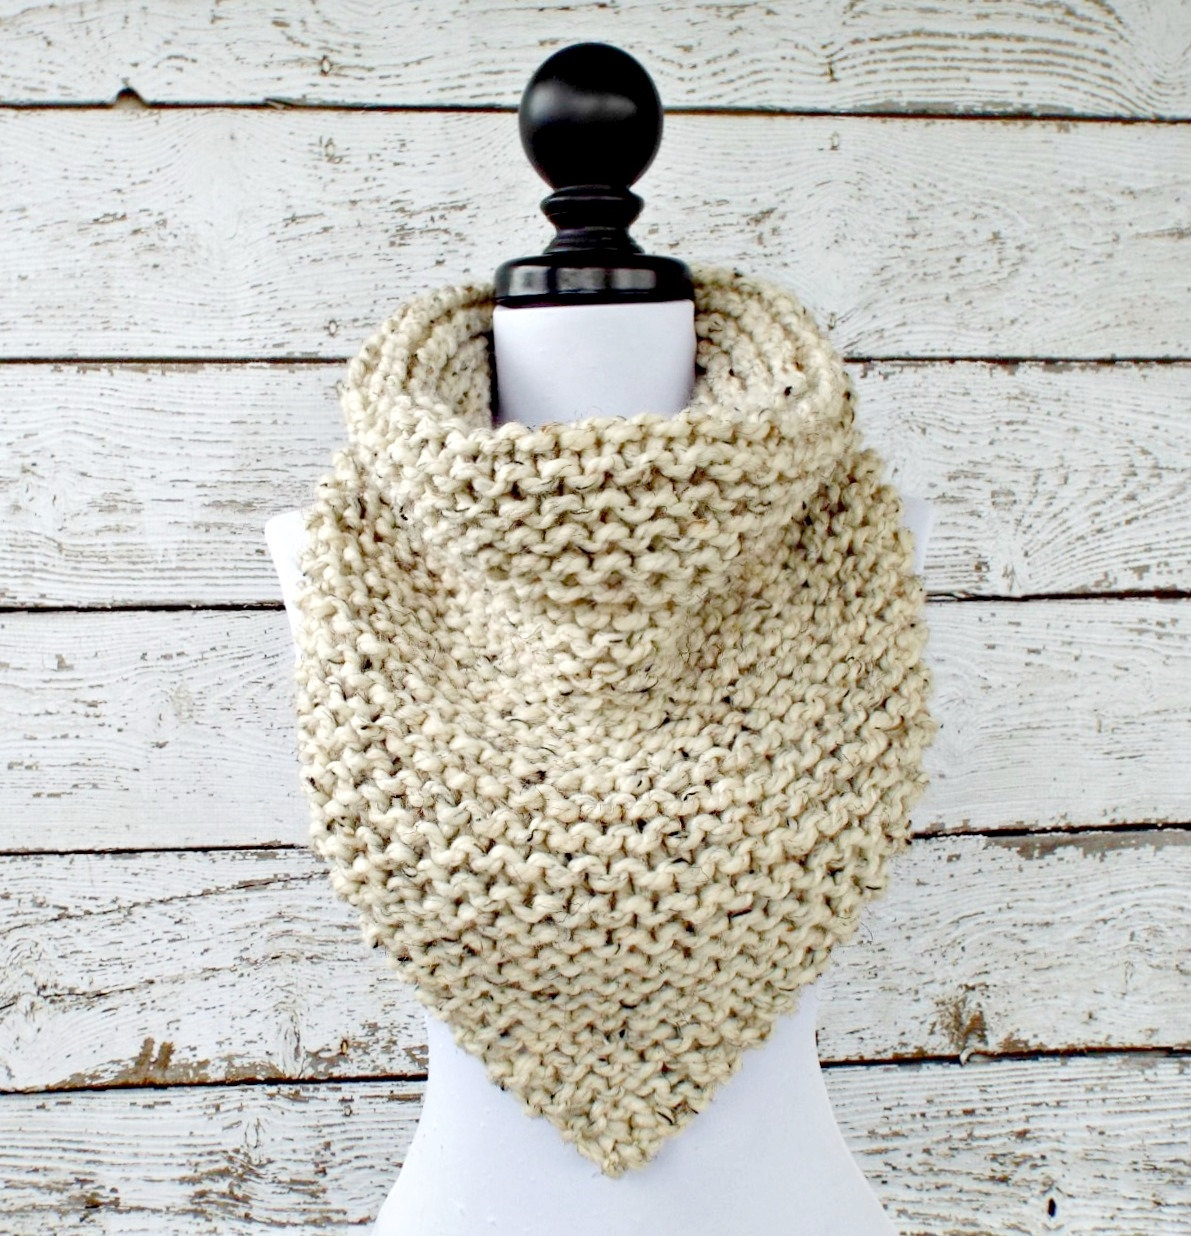 Knit Cowl Scarf Pattern Instant Download Knitting Pattern Pdf Knit Cowl Pattern Knit Scarf Pattern Knitting Pattern Pdf For Bandana Cowl Womens Accessories